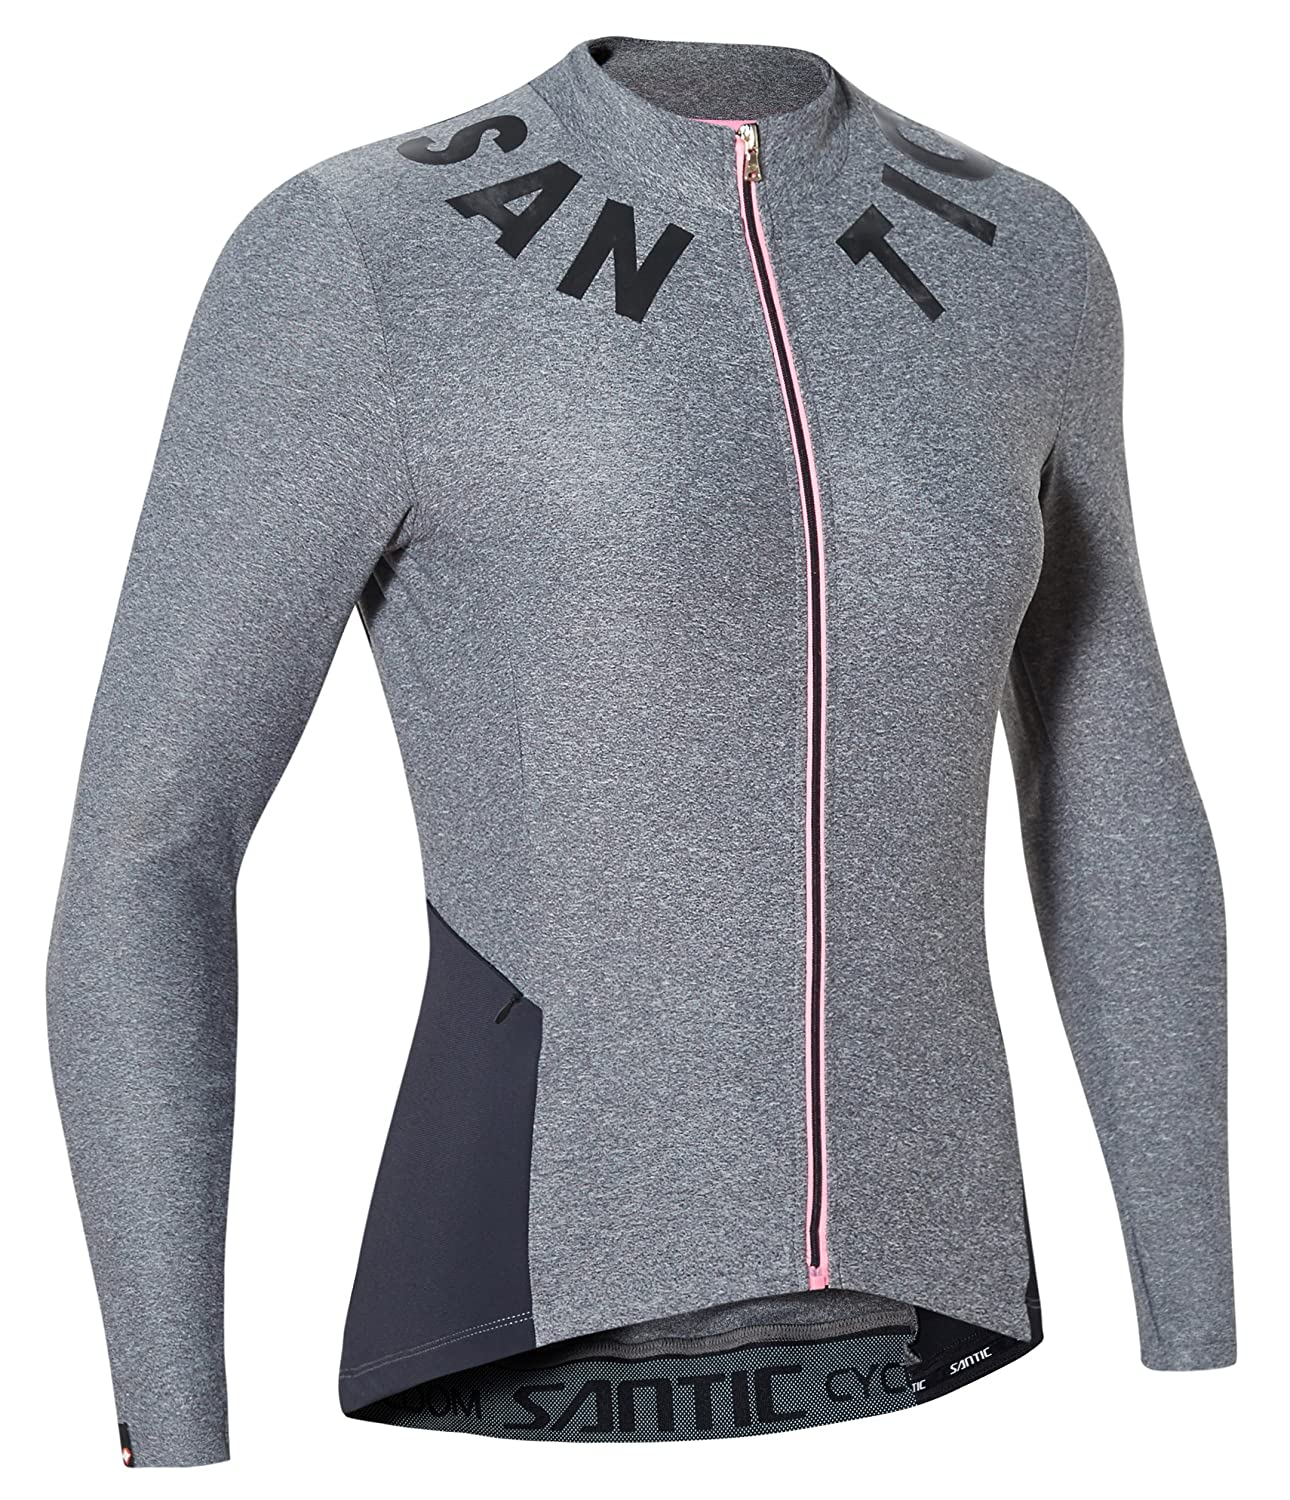 225cc748a Amazon.com   Santic Cycling Jersey Women s Long Sleeve Bicycle Tops  Mountain Bike Shirts with Pockets   Sports   Outdoors